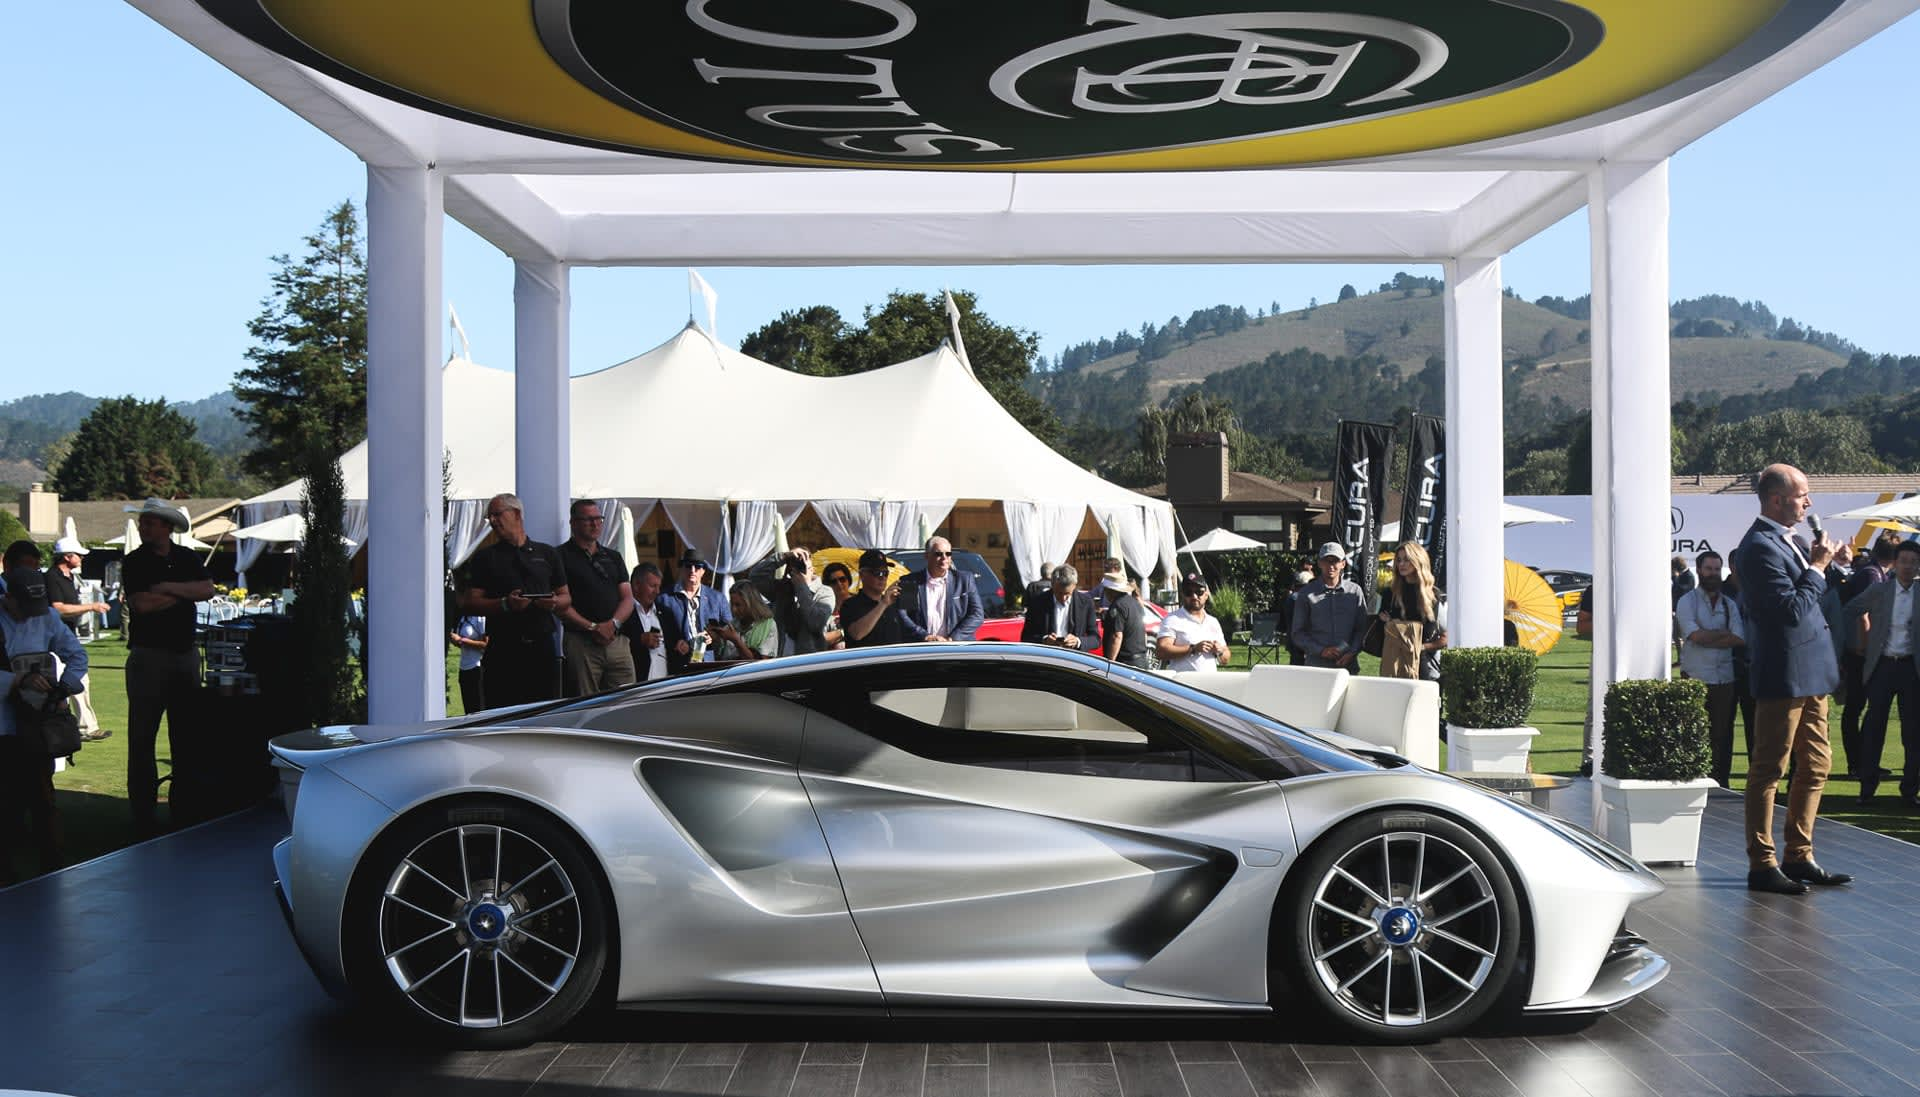 Lotus Sports Car >> Lotus Ev Supercar Hints At The Automaker S Future Engadget